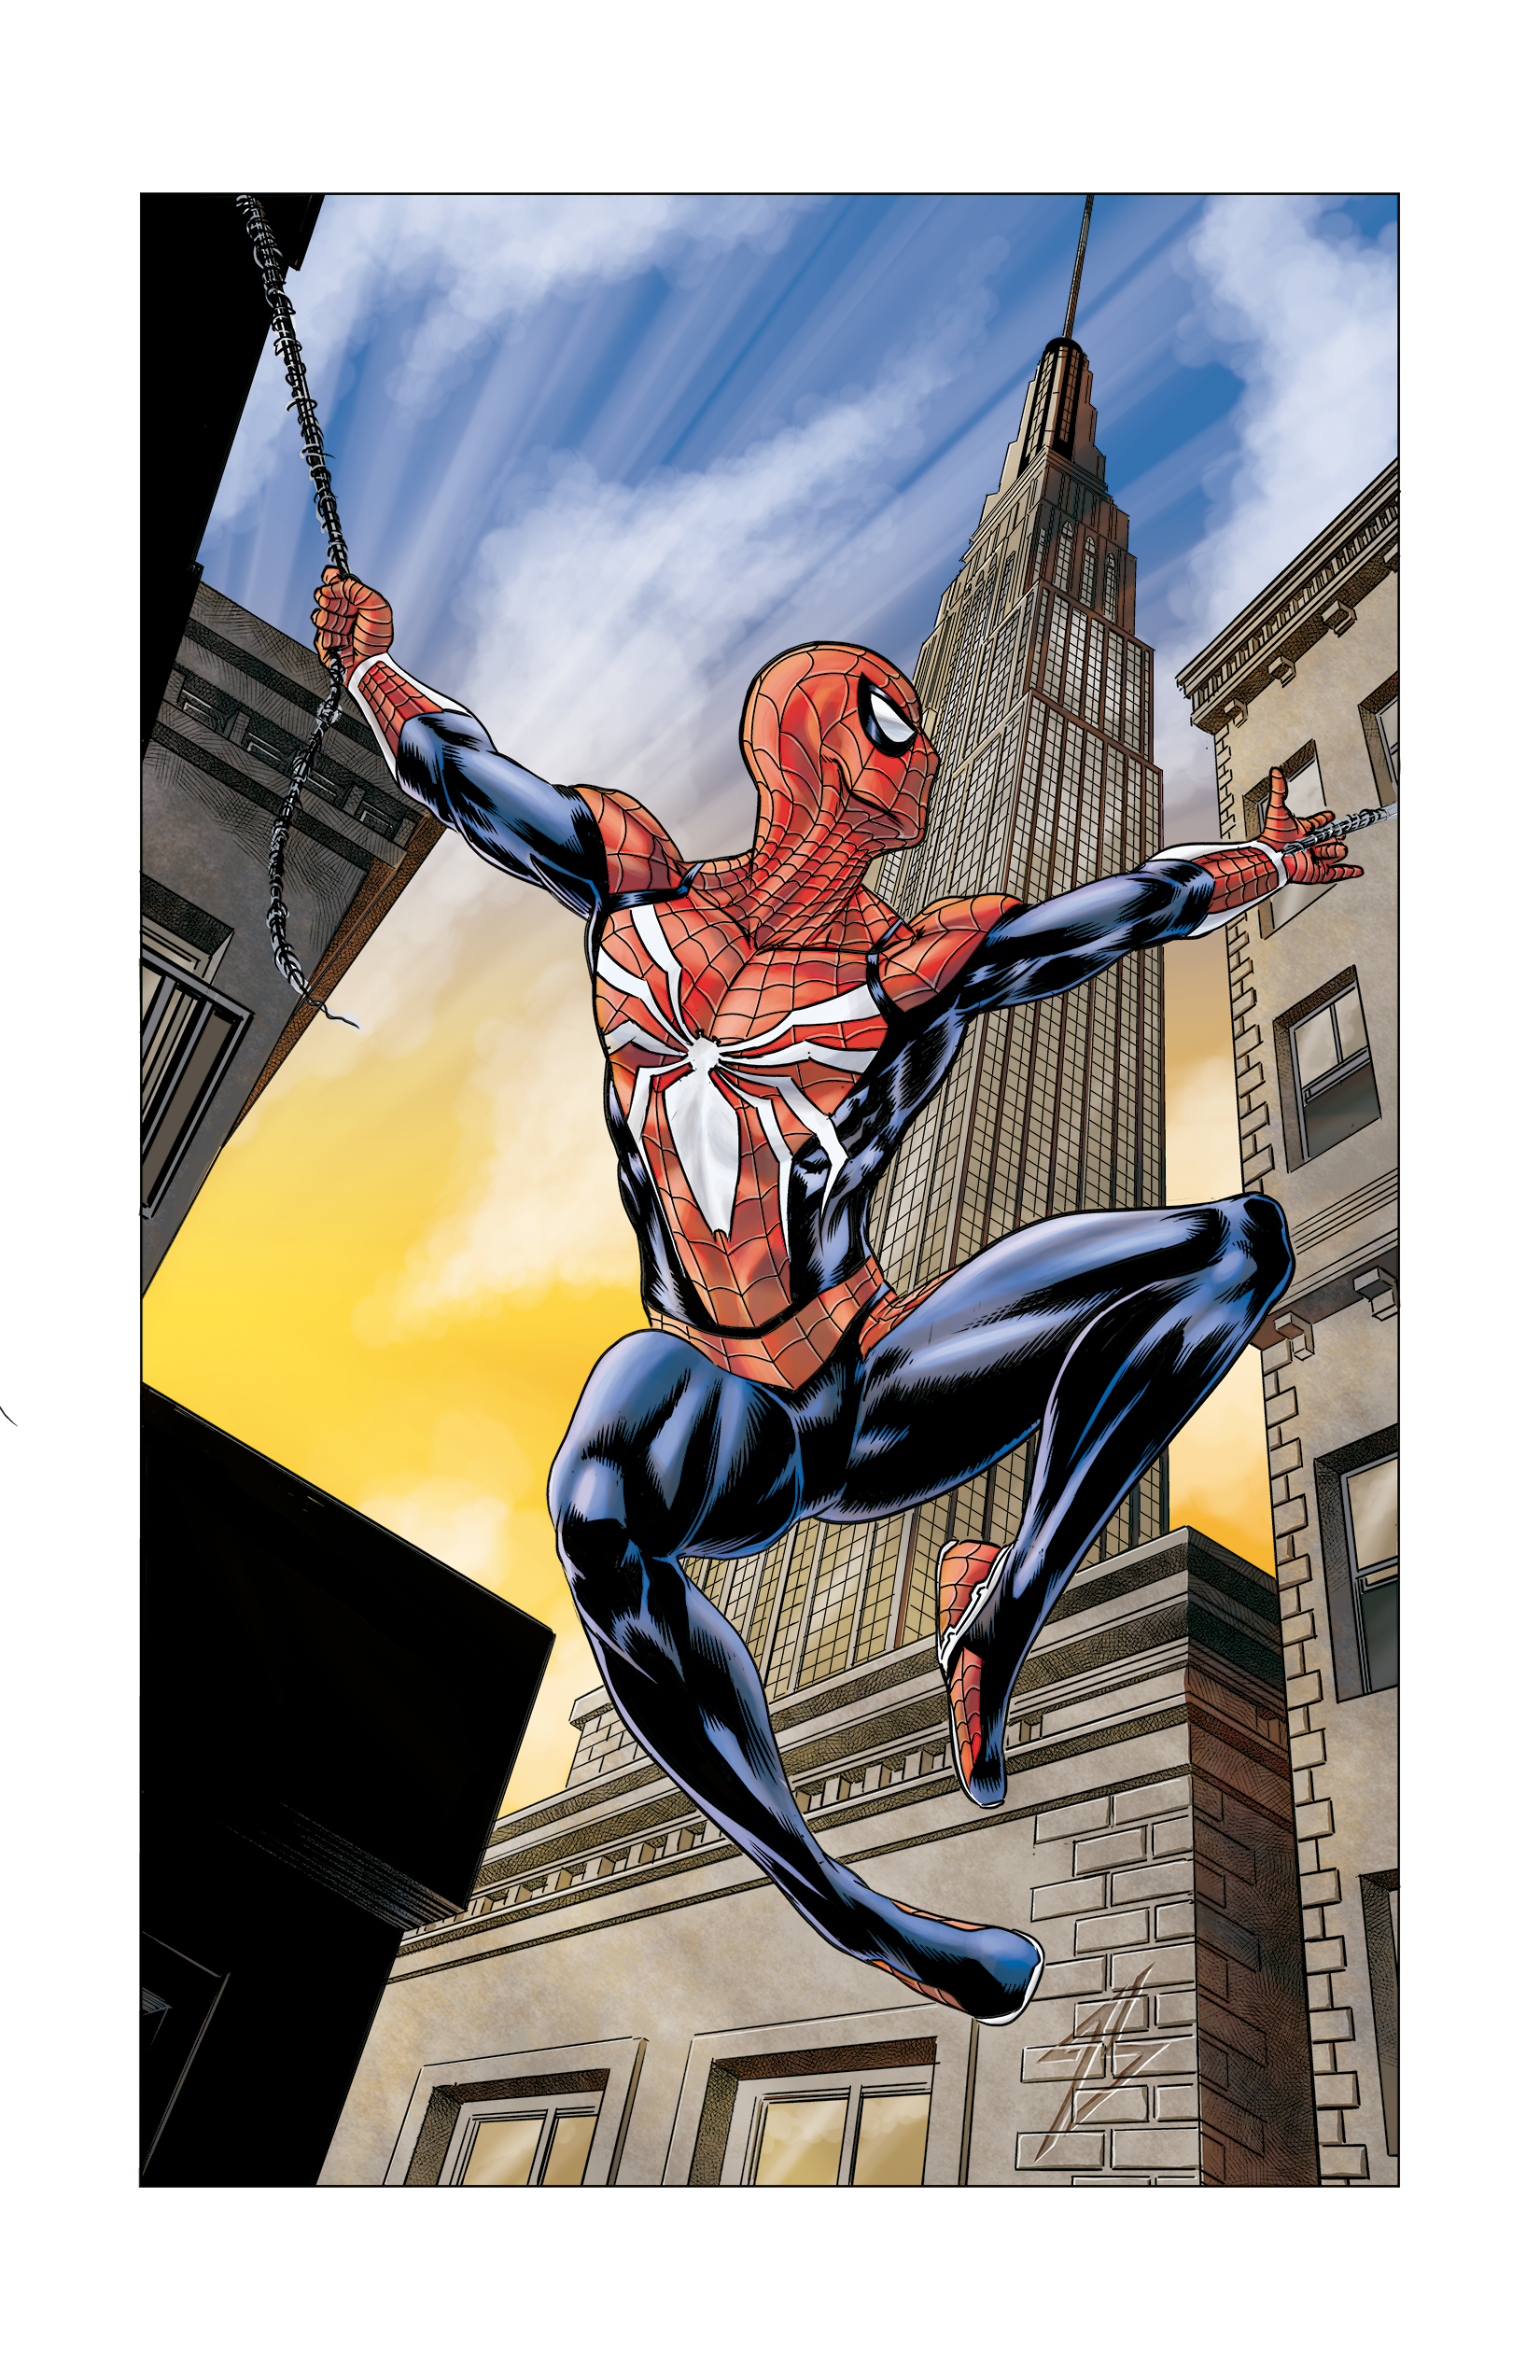 Spider-Man Digital Illustration